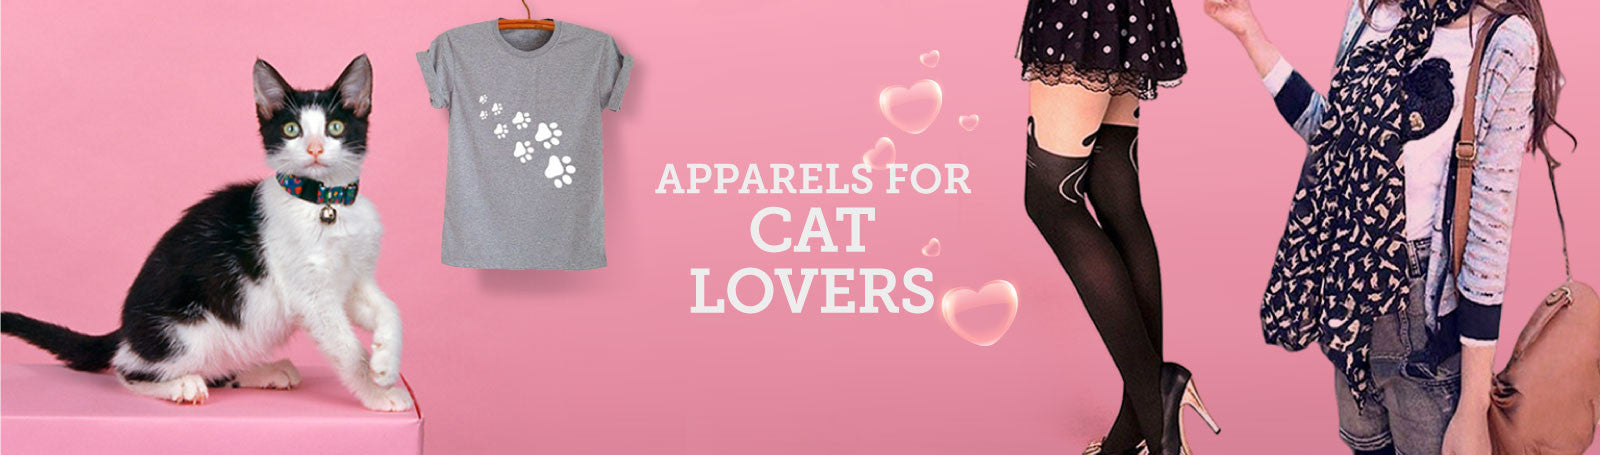 Cat Lovers Cat apparels